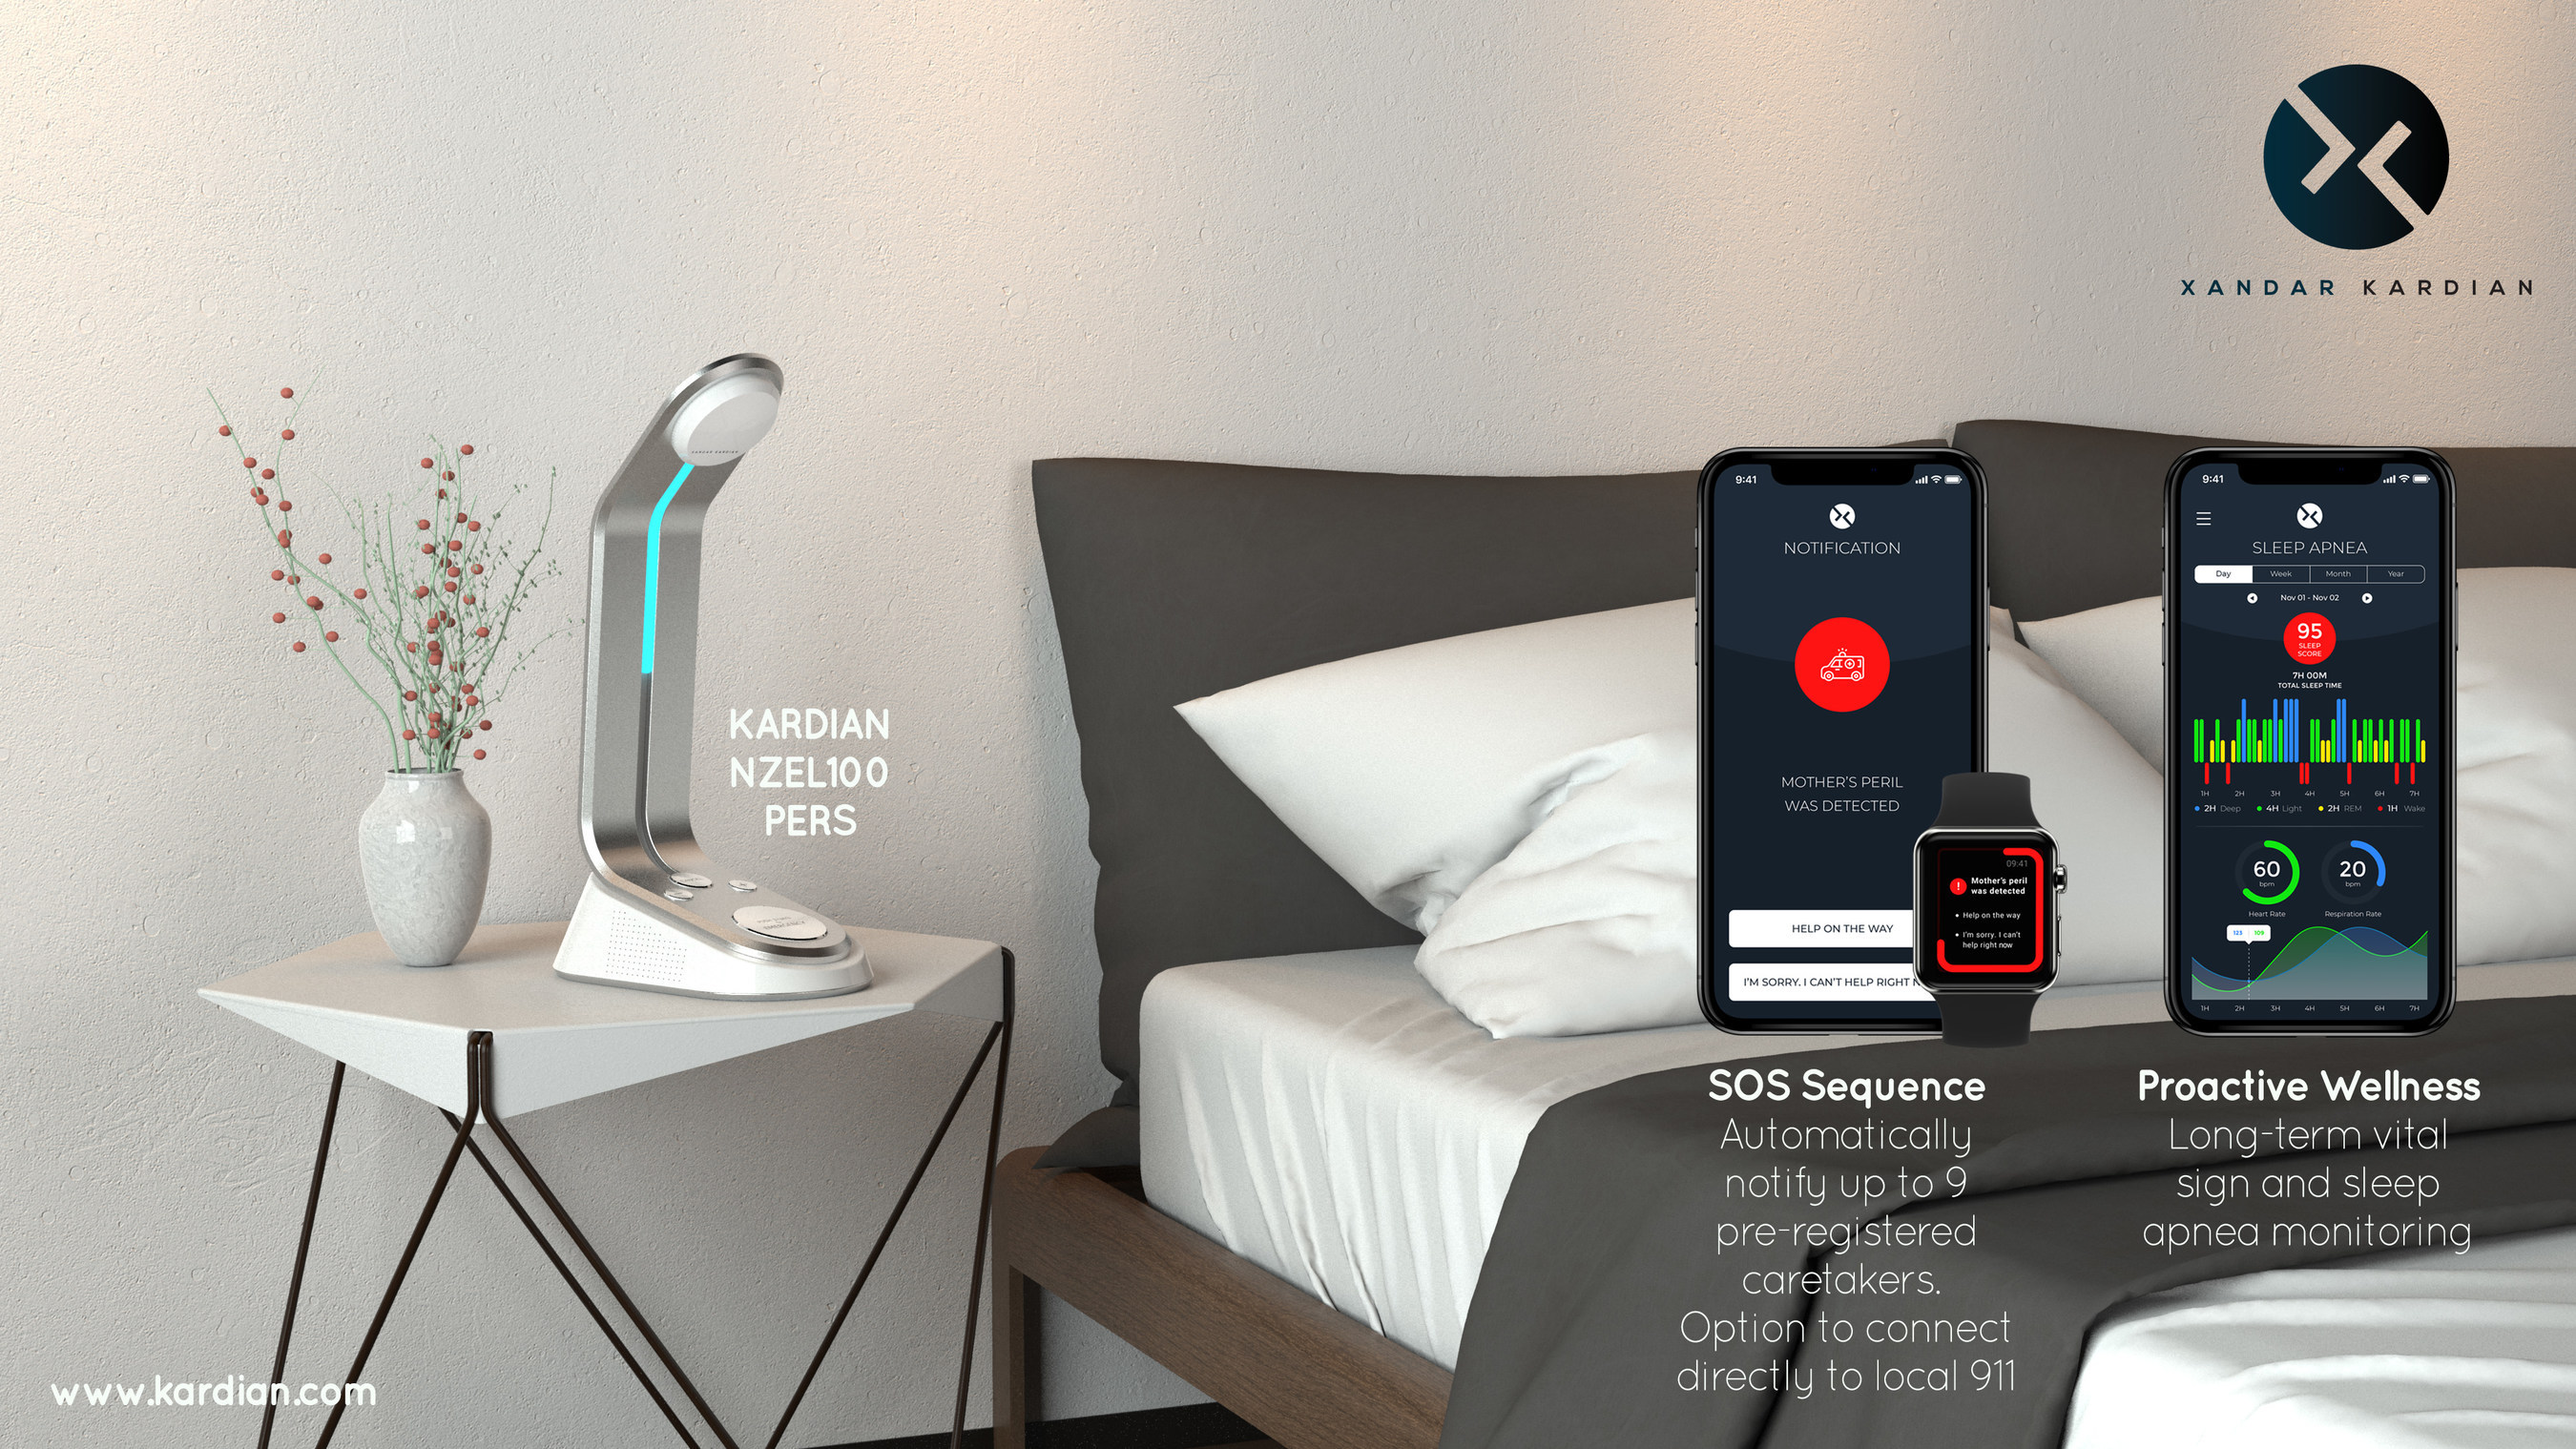 Xandar Kardian NZEL100 PERS home IOT device with IR-UWB RADAR for non-contact vital sign and sleep apnea monitoring. Launching at CES 2019, booth 45449 SANDS EXPO.